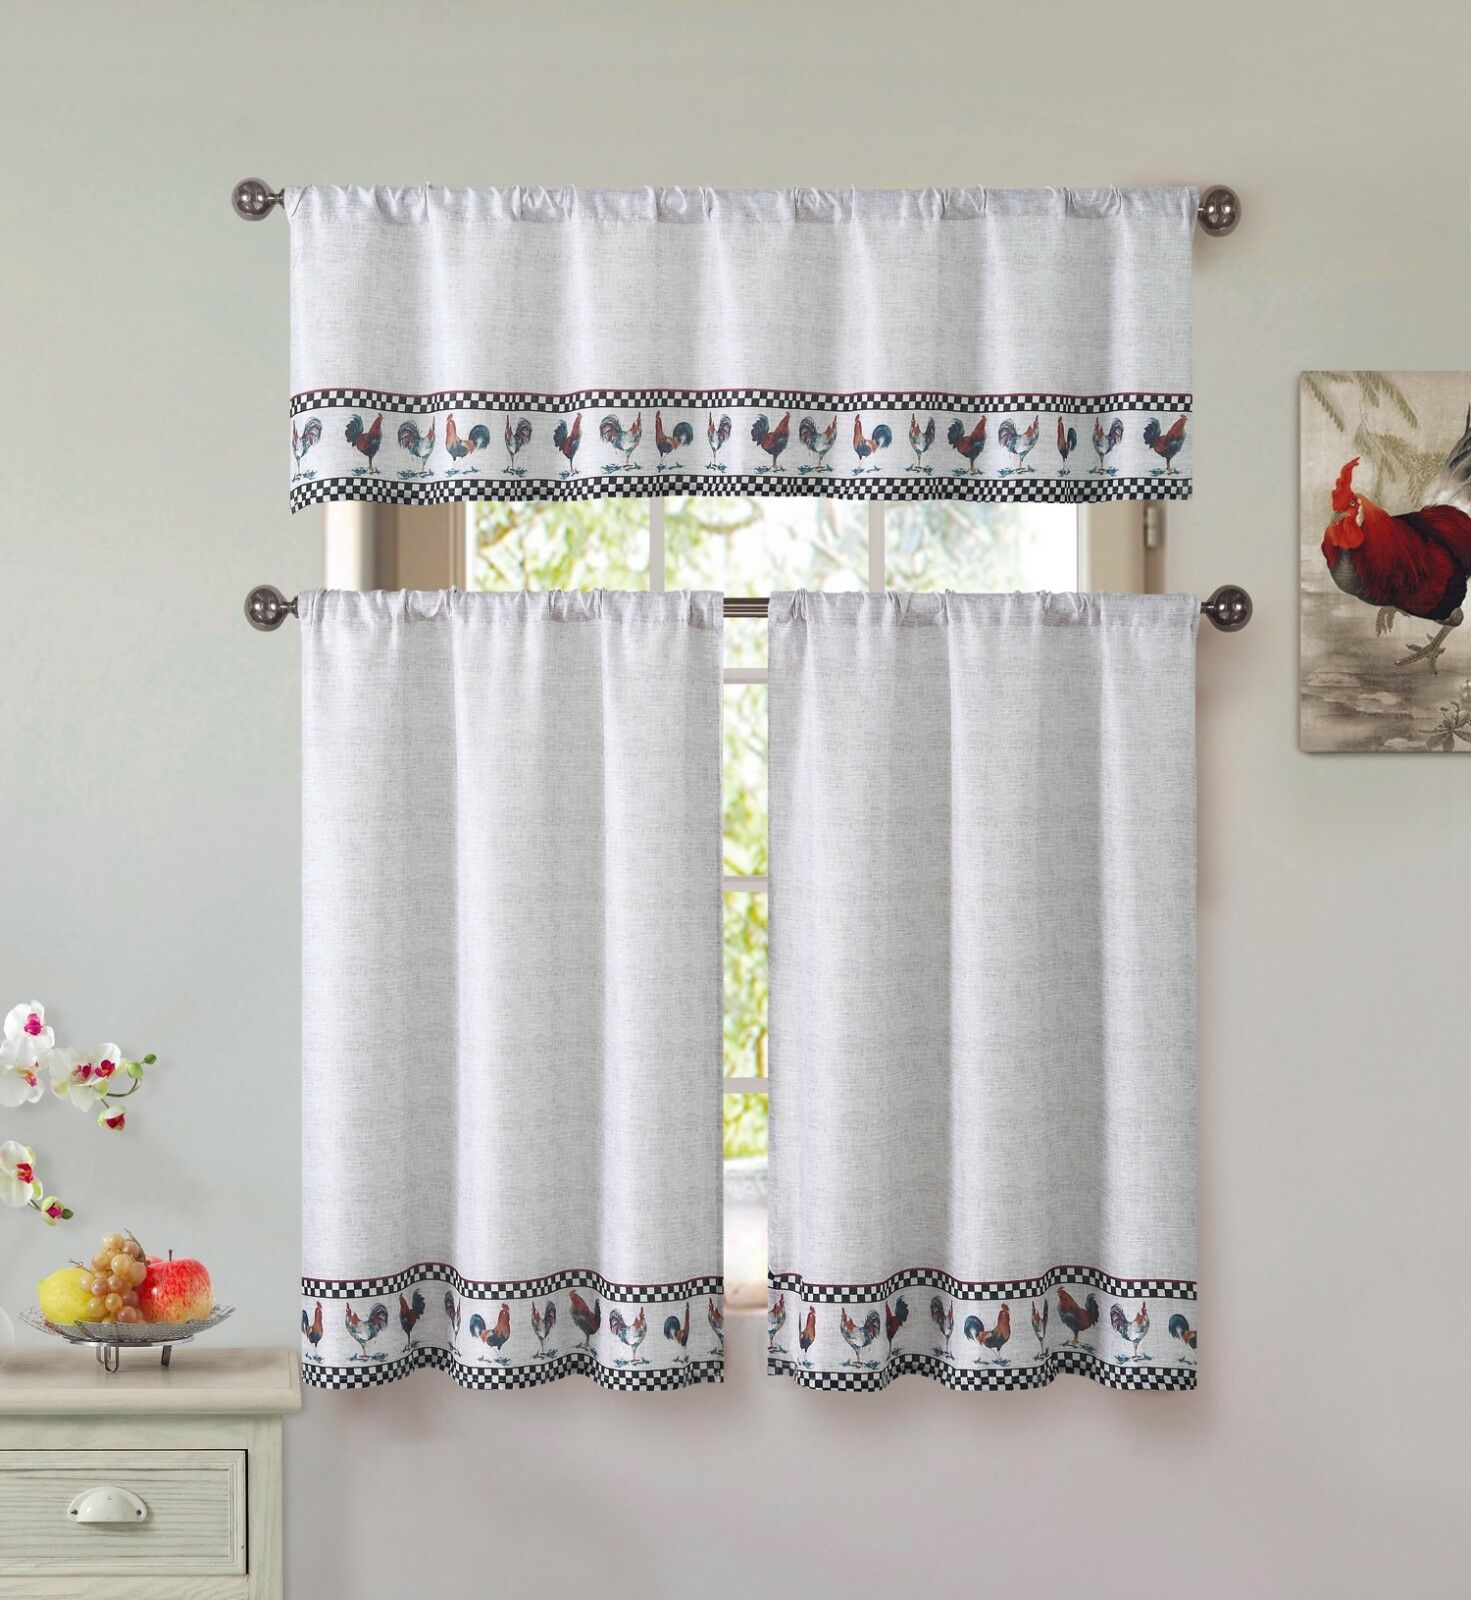 Tan Beige Farmhouse 3 Piece Kitchen Curtains Set Roosters Black Checked Nwop For Sale Online